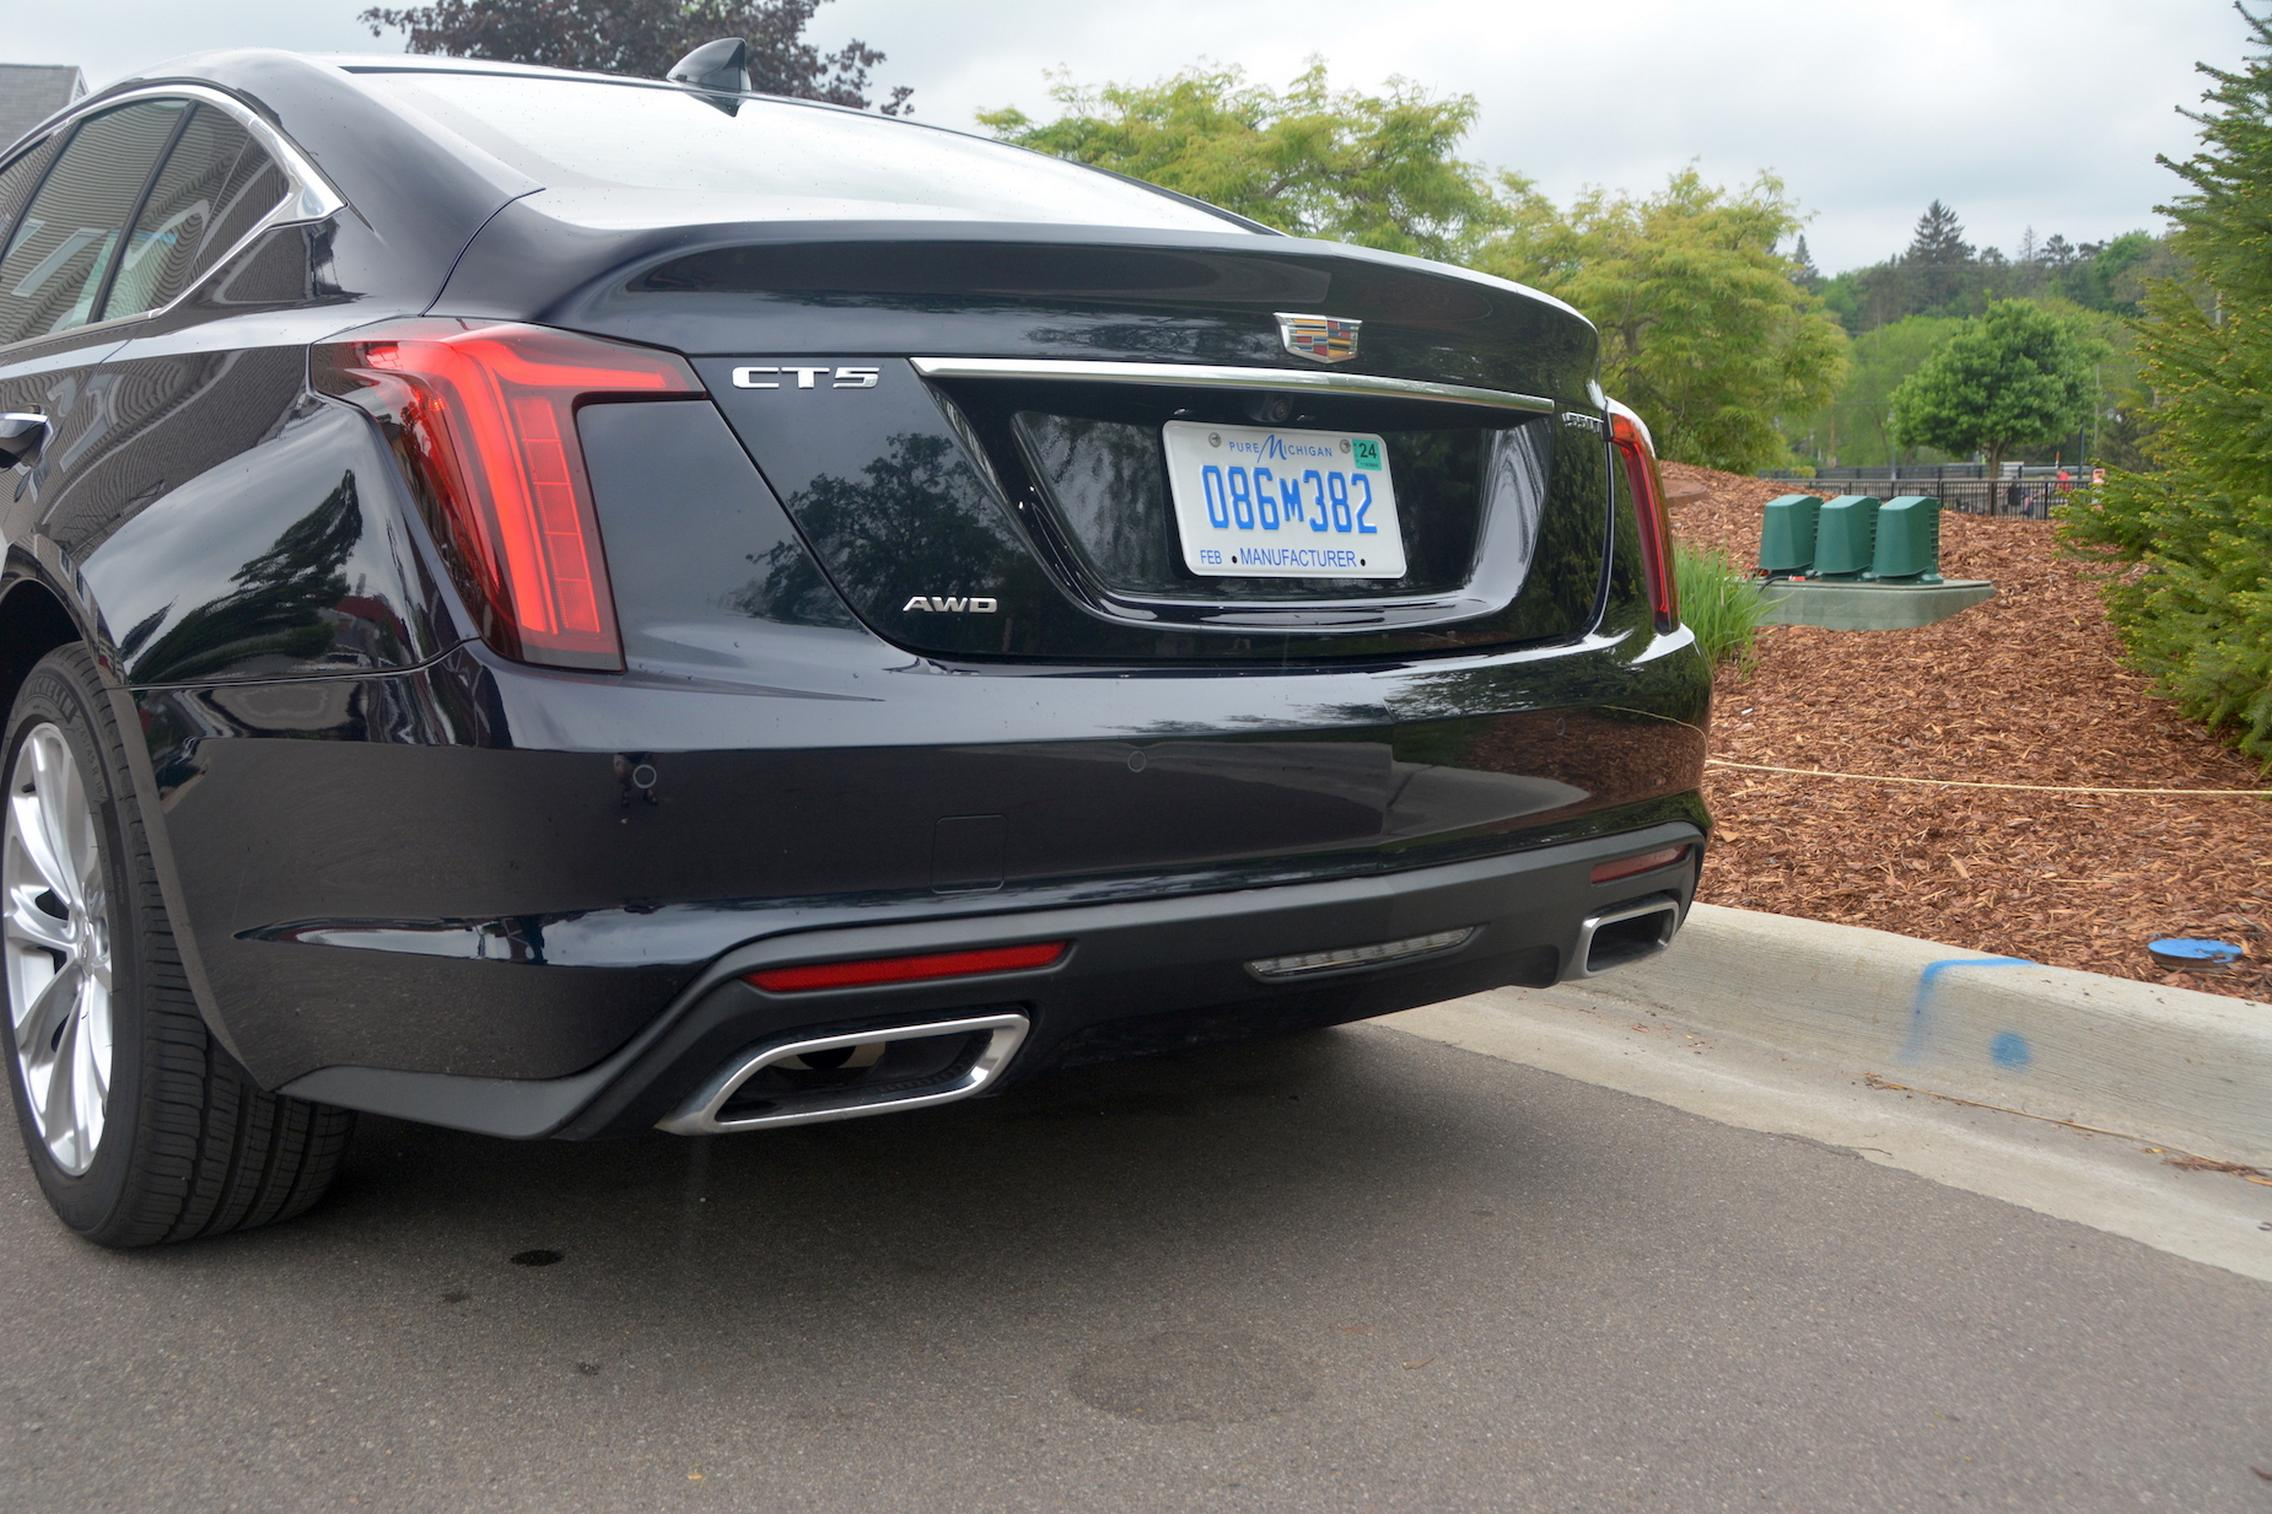 2021 Cadillac CT5 exhaust